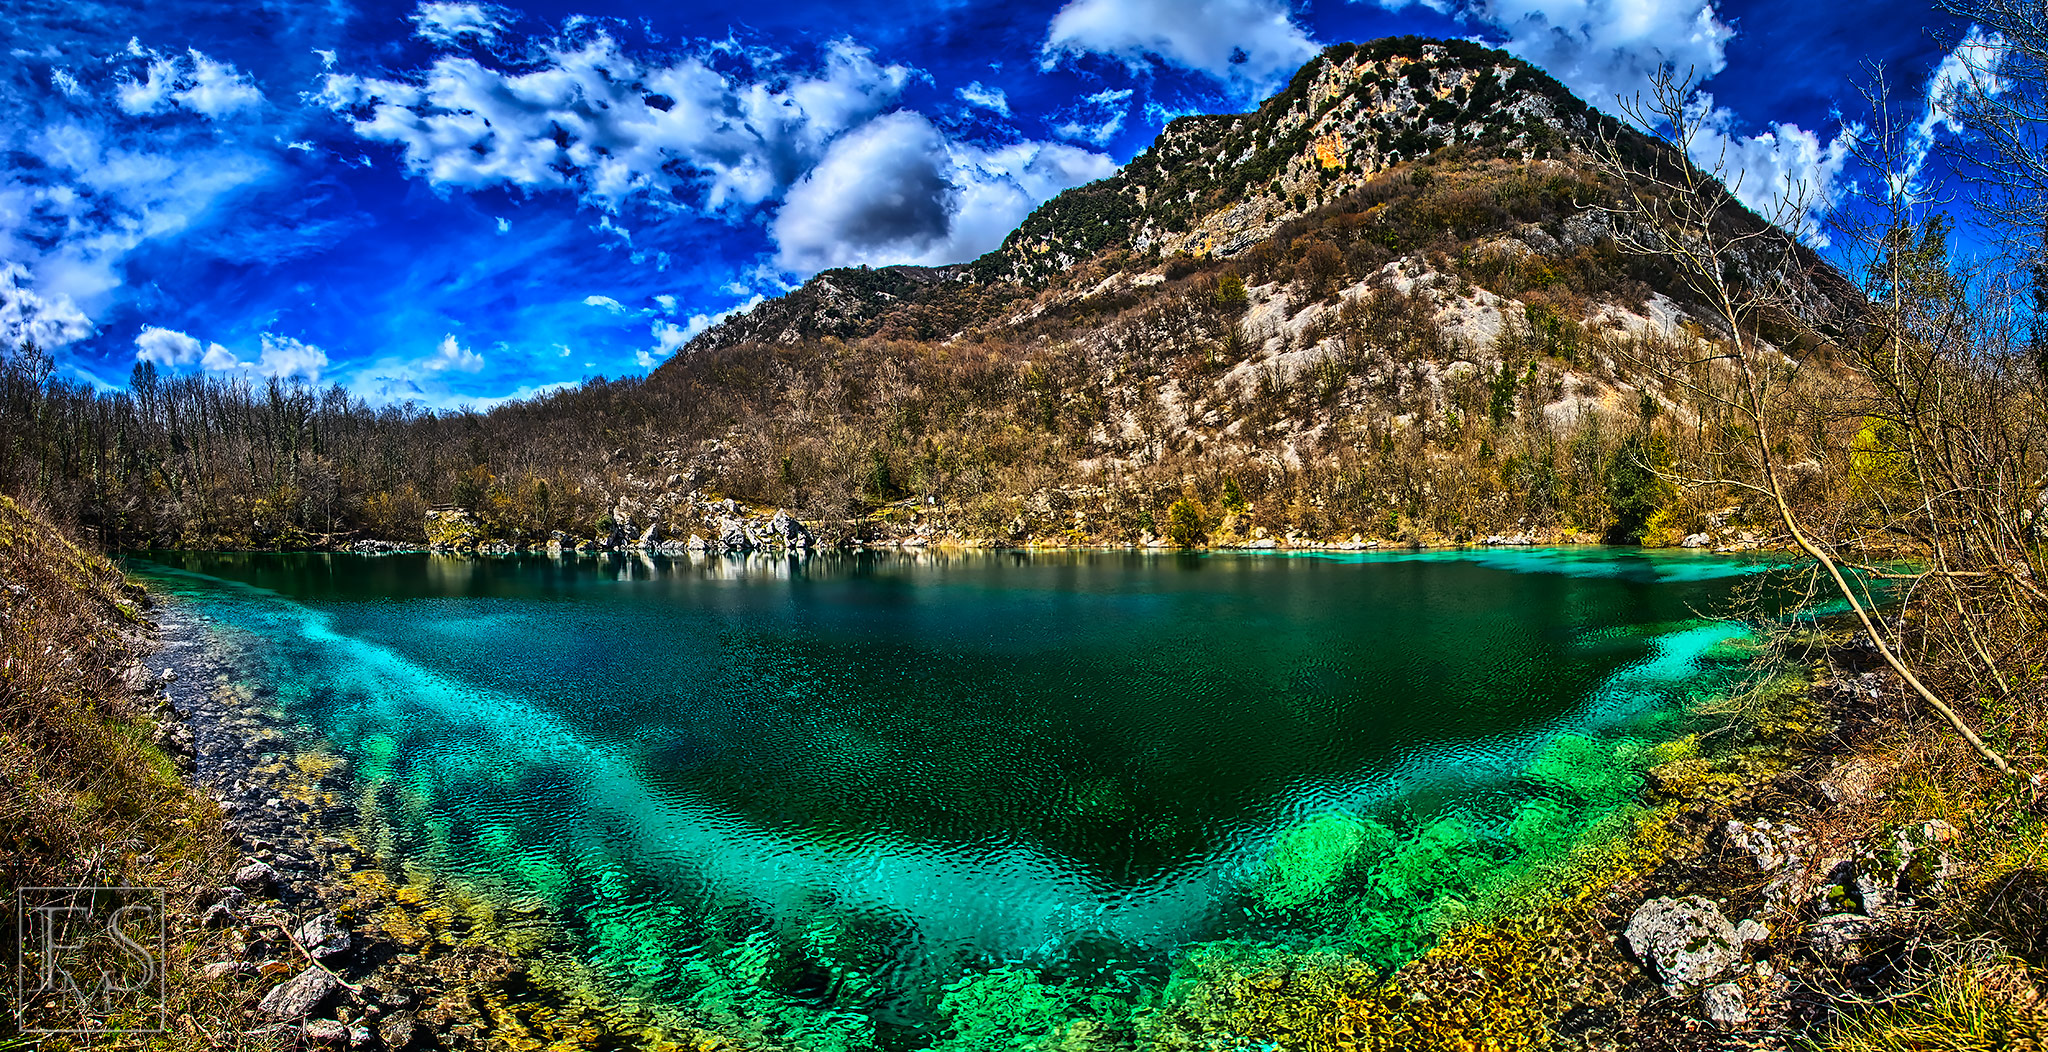 The Clear Green Lake